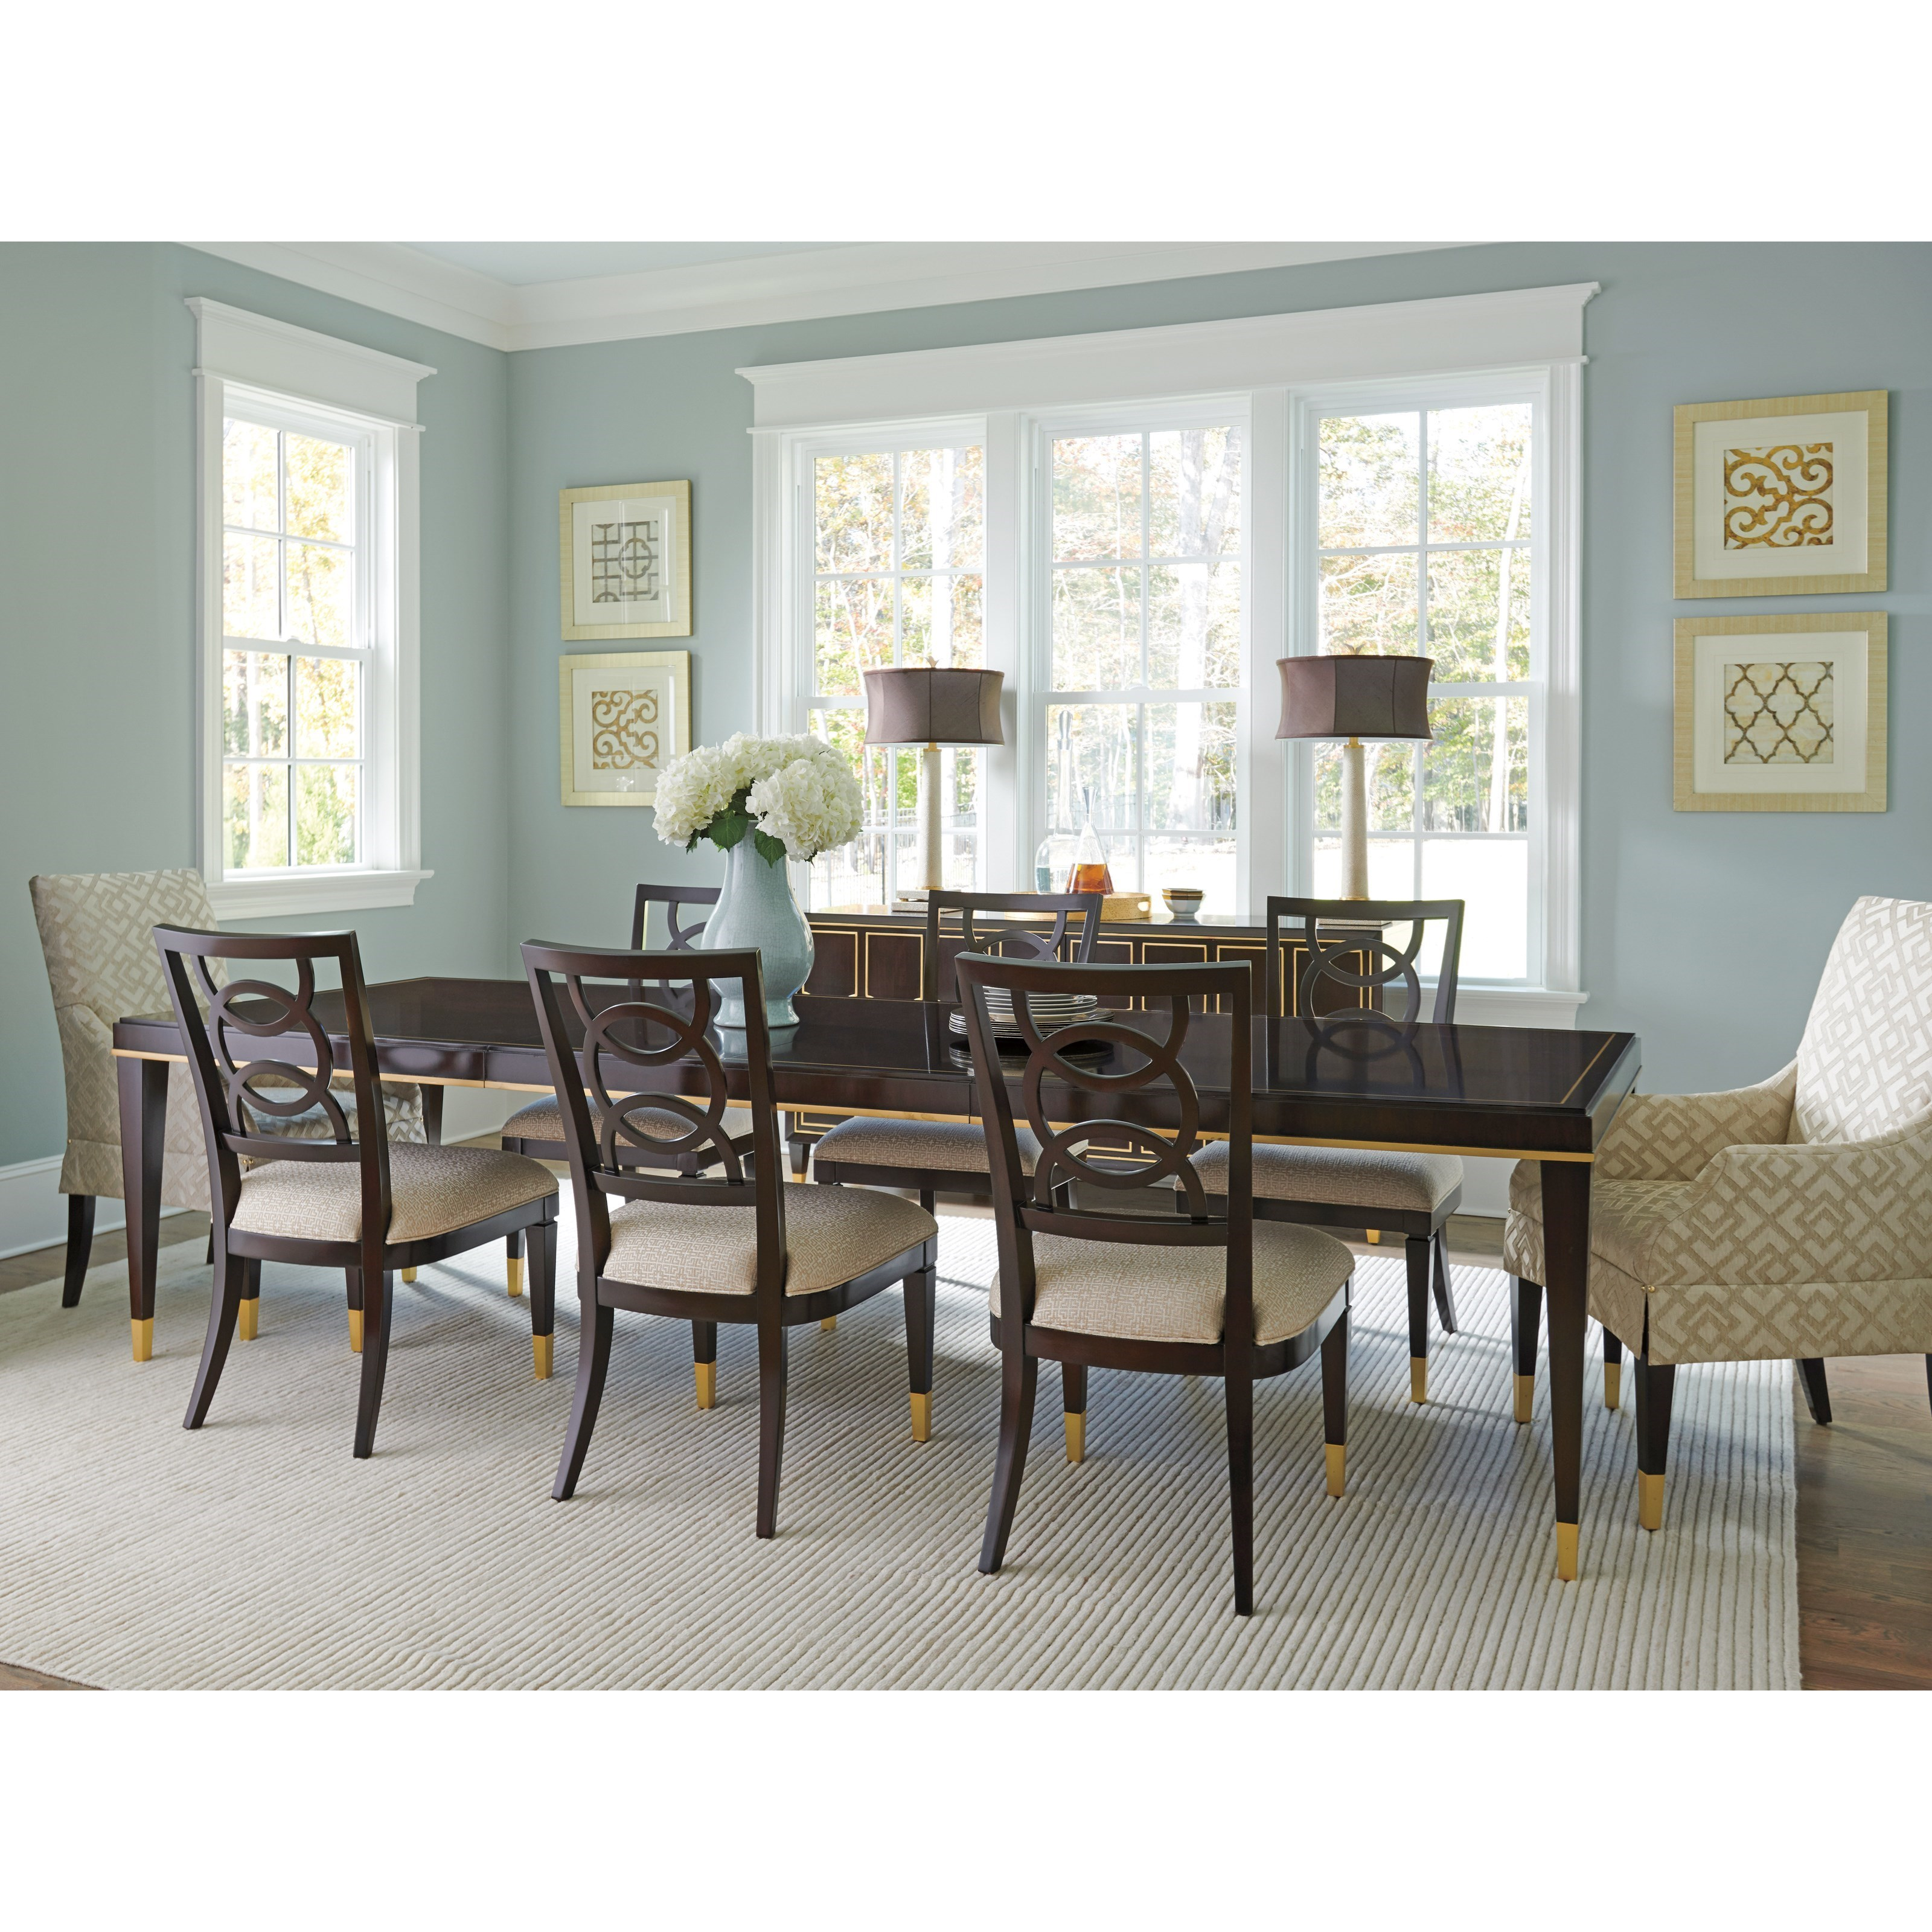 Carlyle 9 Pc Dining Set by Lexington at Johnny Janosik